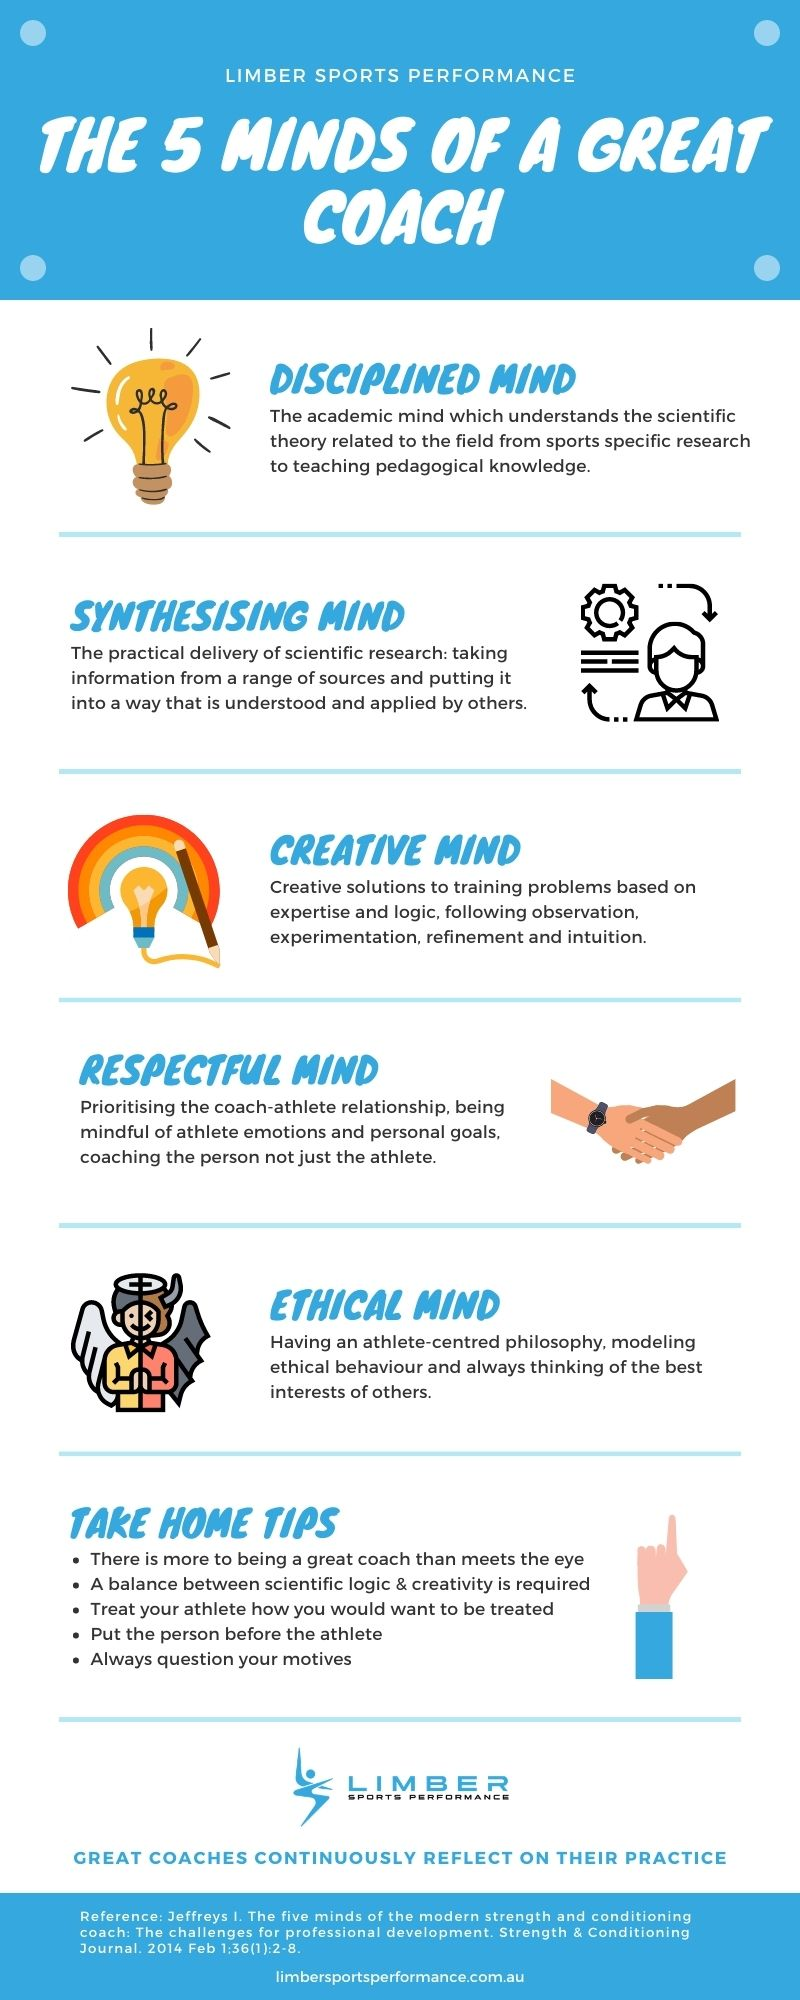 The 5 Minds of a Great Coach